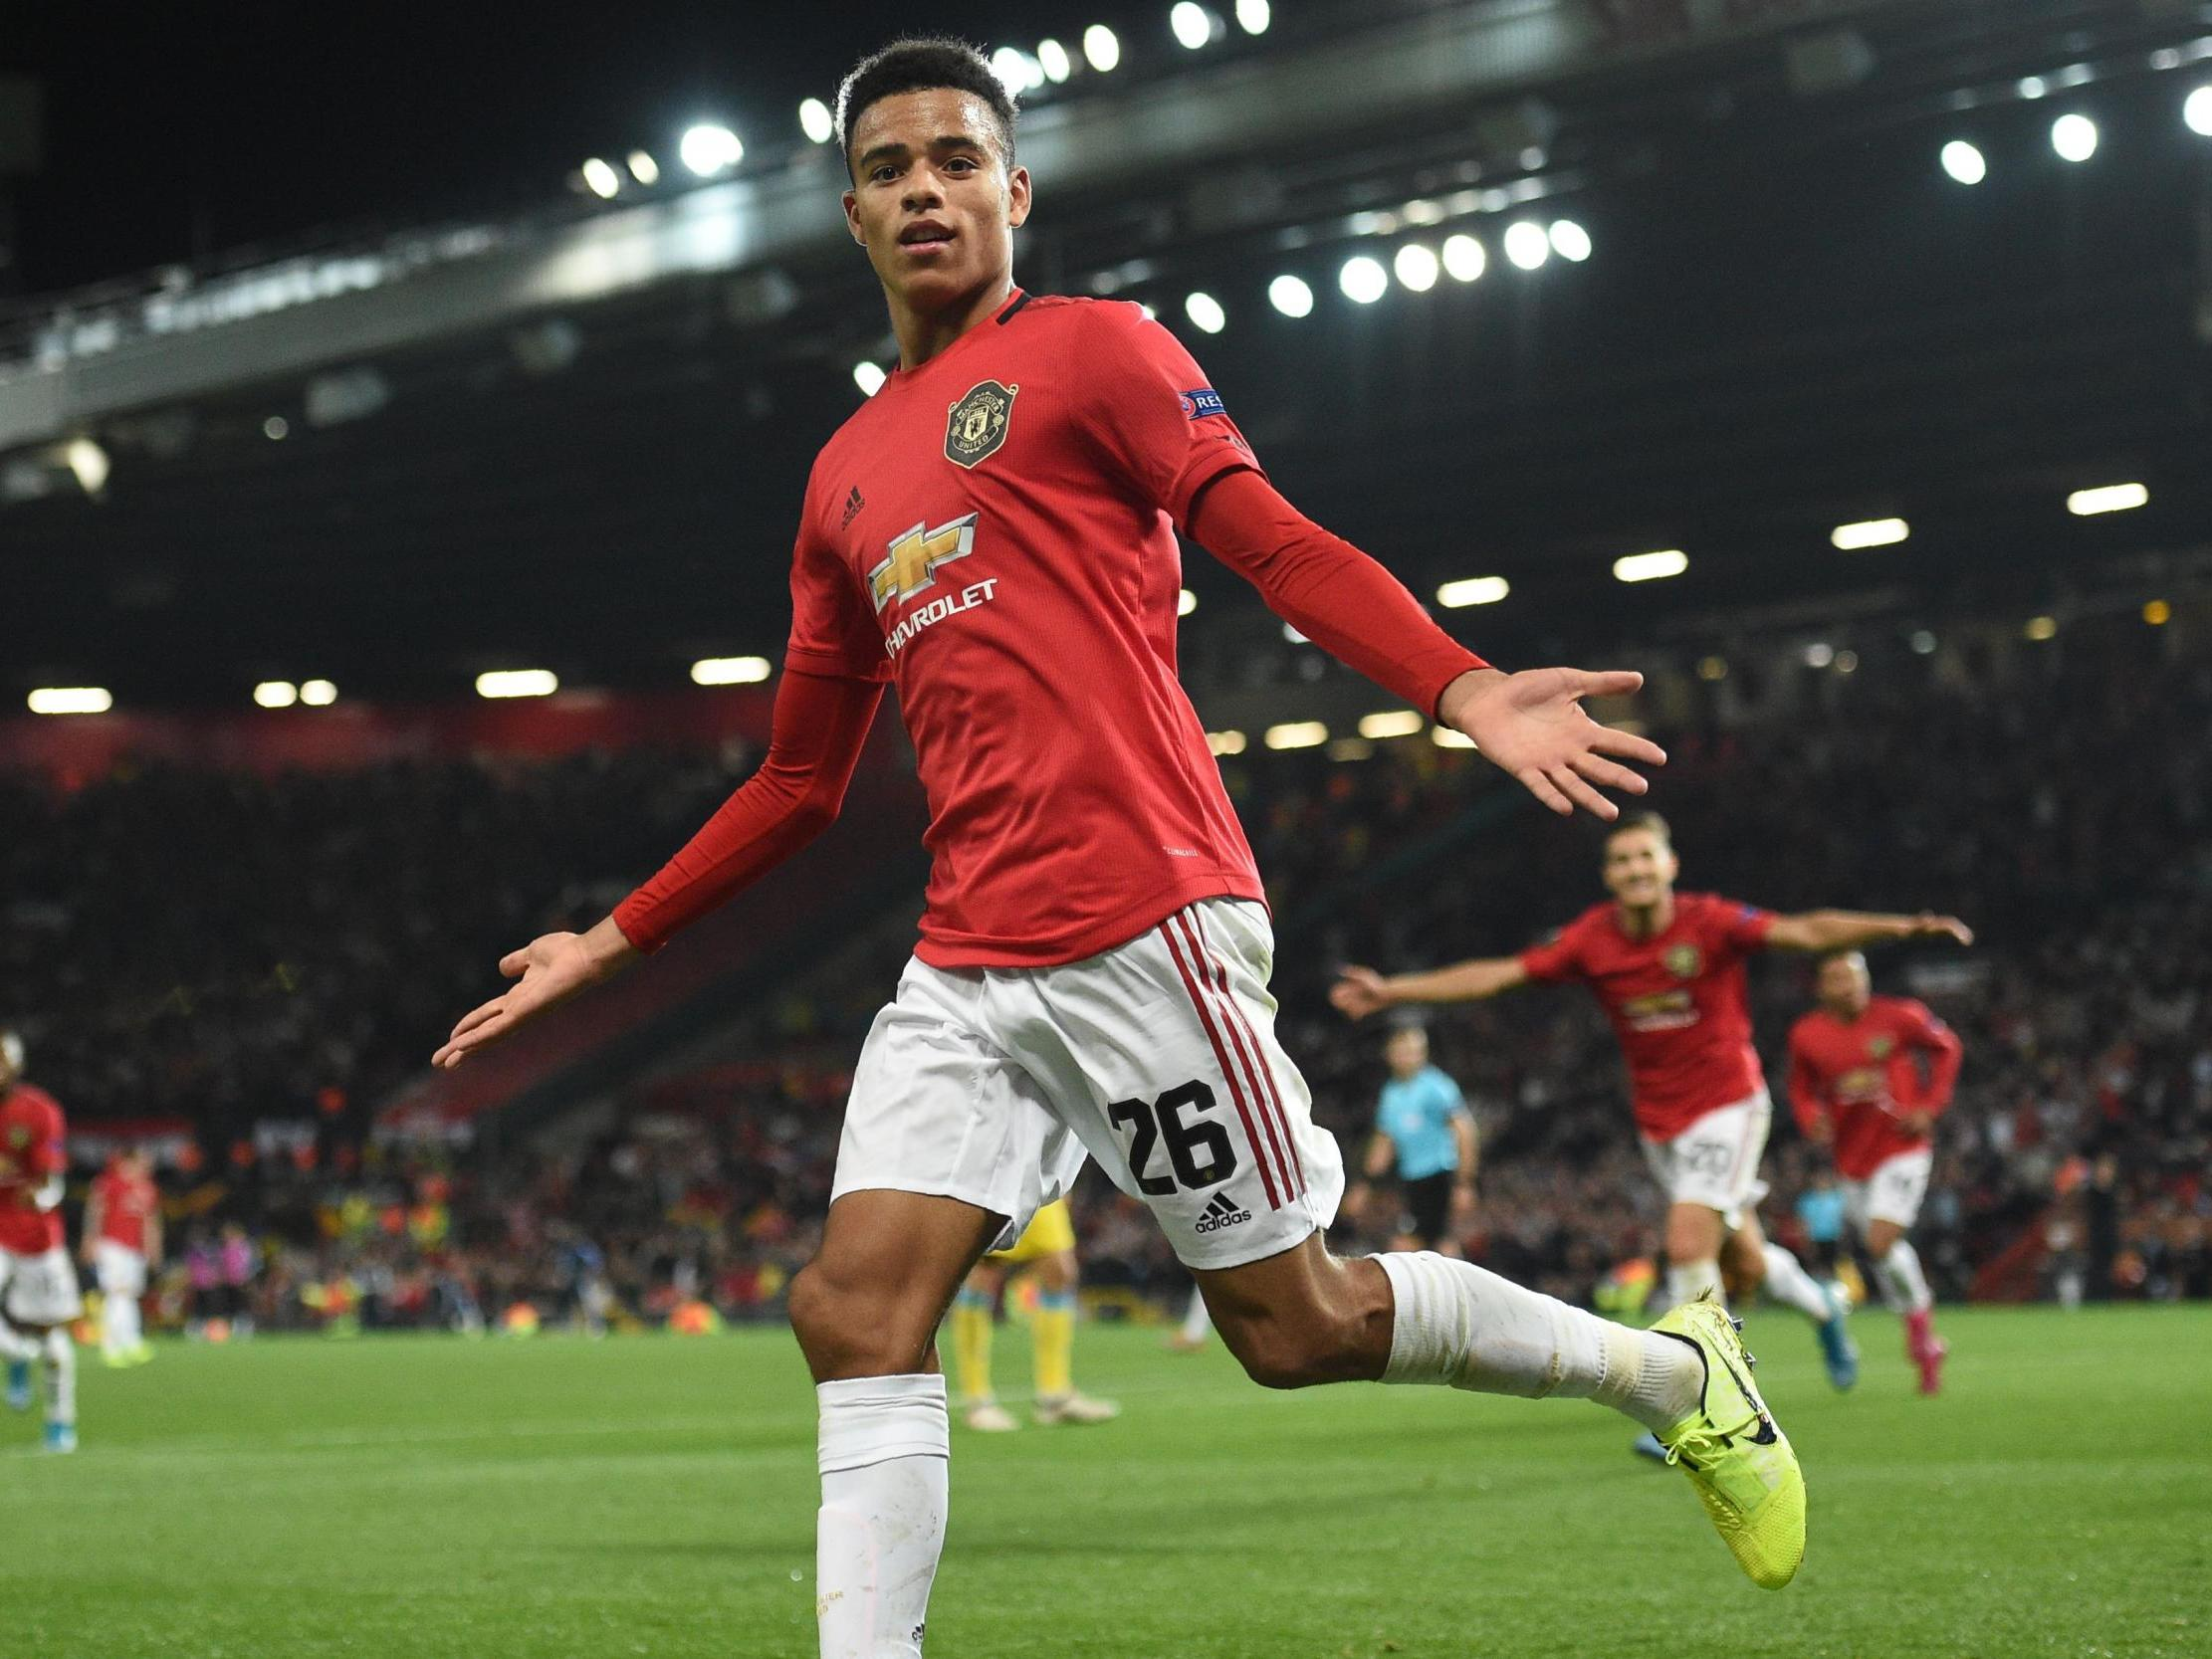 Manchester United vs Astana player ratings: Mason Greenwood stars in narrow Europa League win